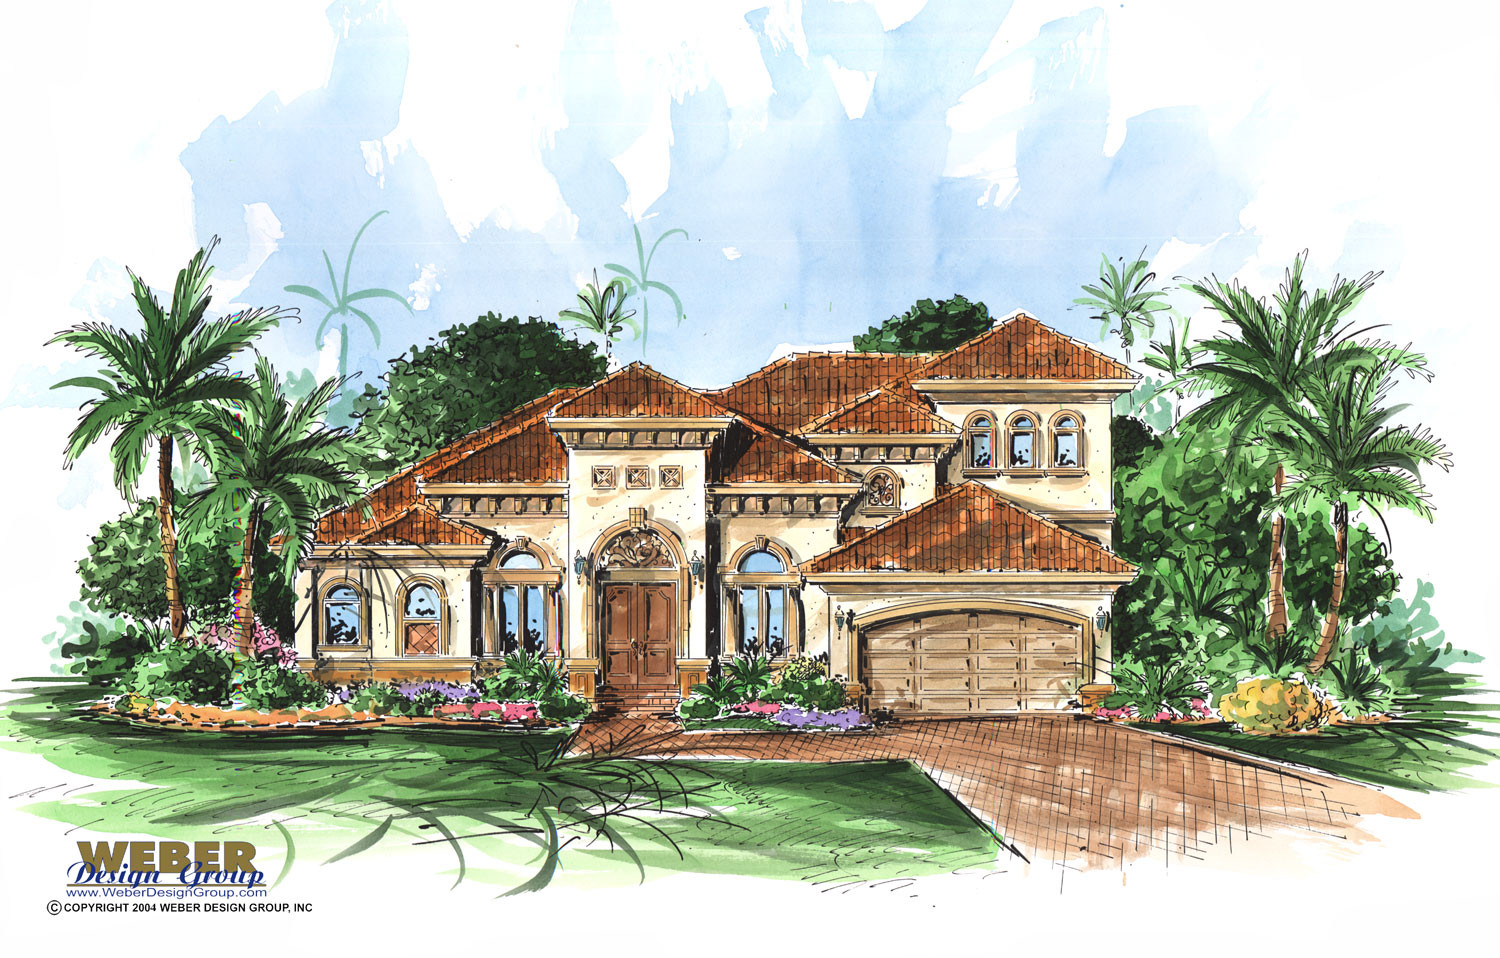 San gabriel home plan weber design group for Weber house plans